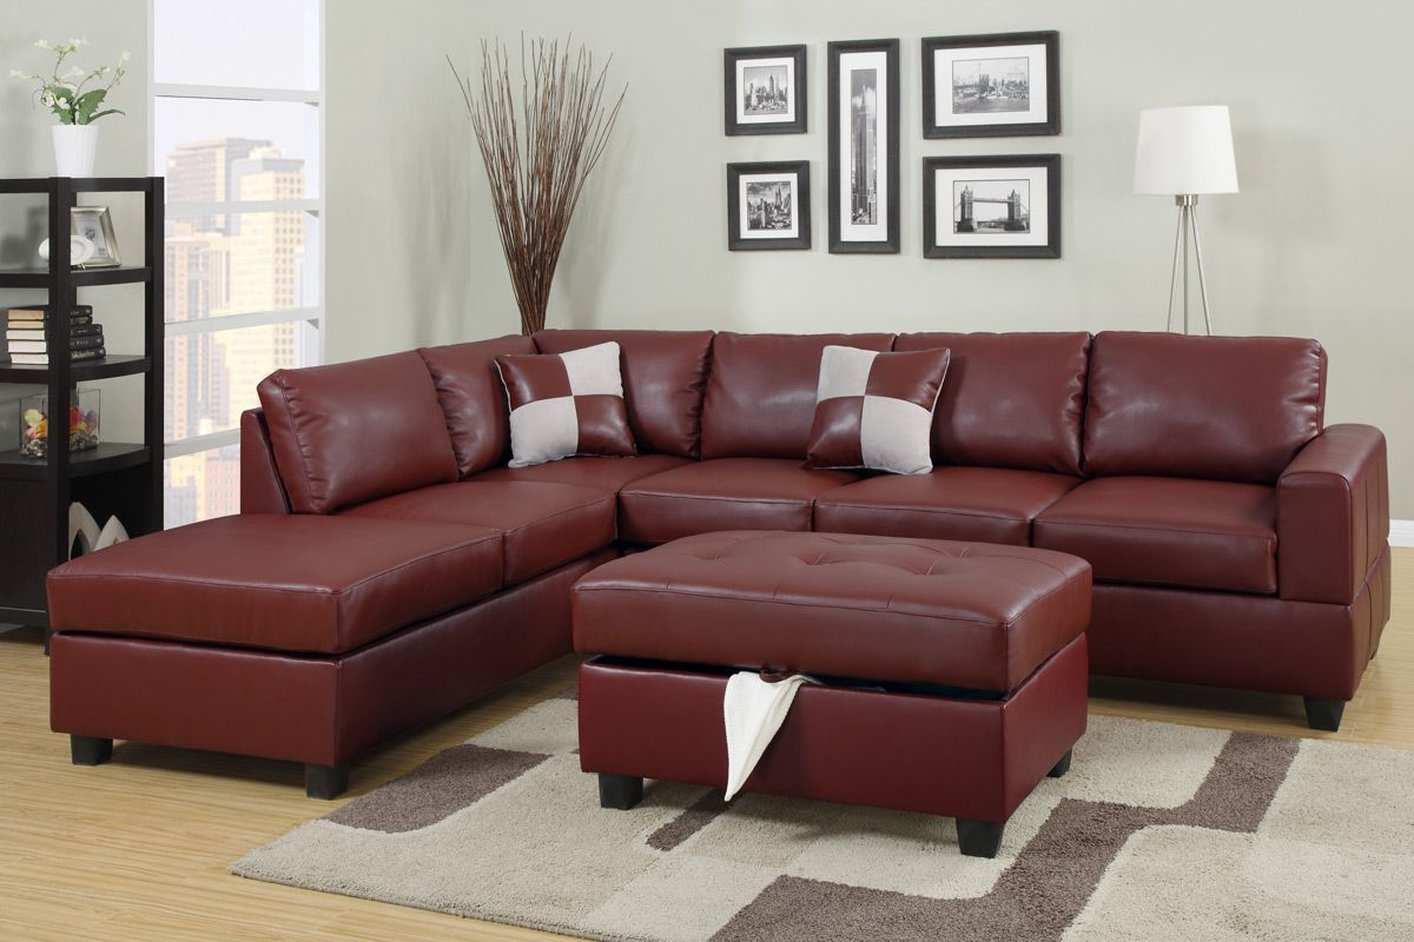 Red Leather Sectional Sofa and Ottoman - Steal-A-Sofa Furniture Outlet Los  Angeles CA